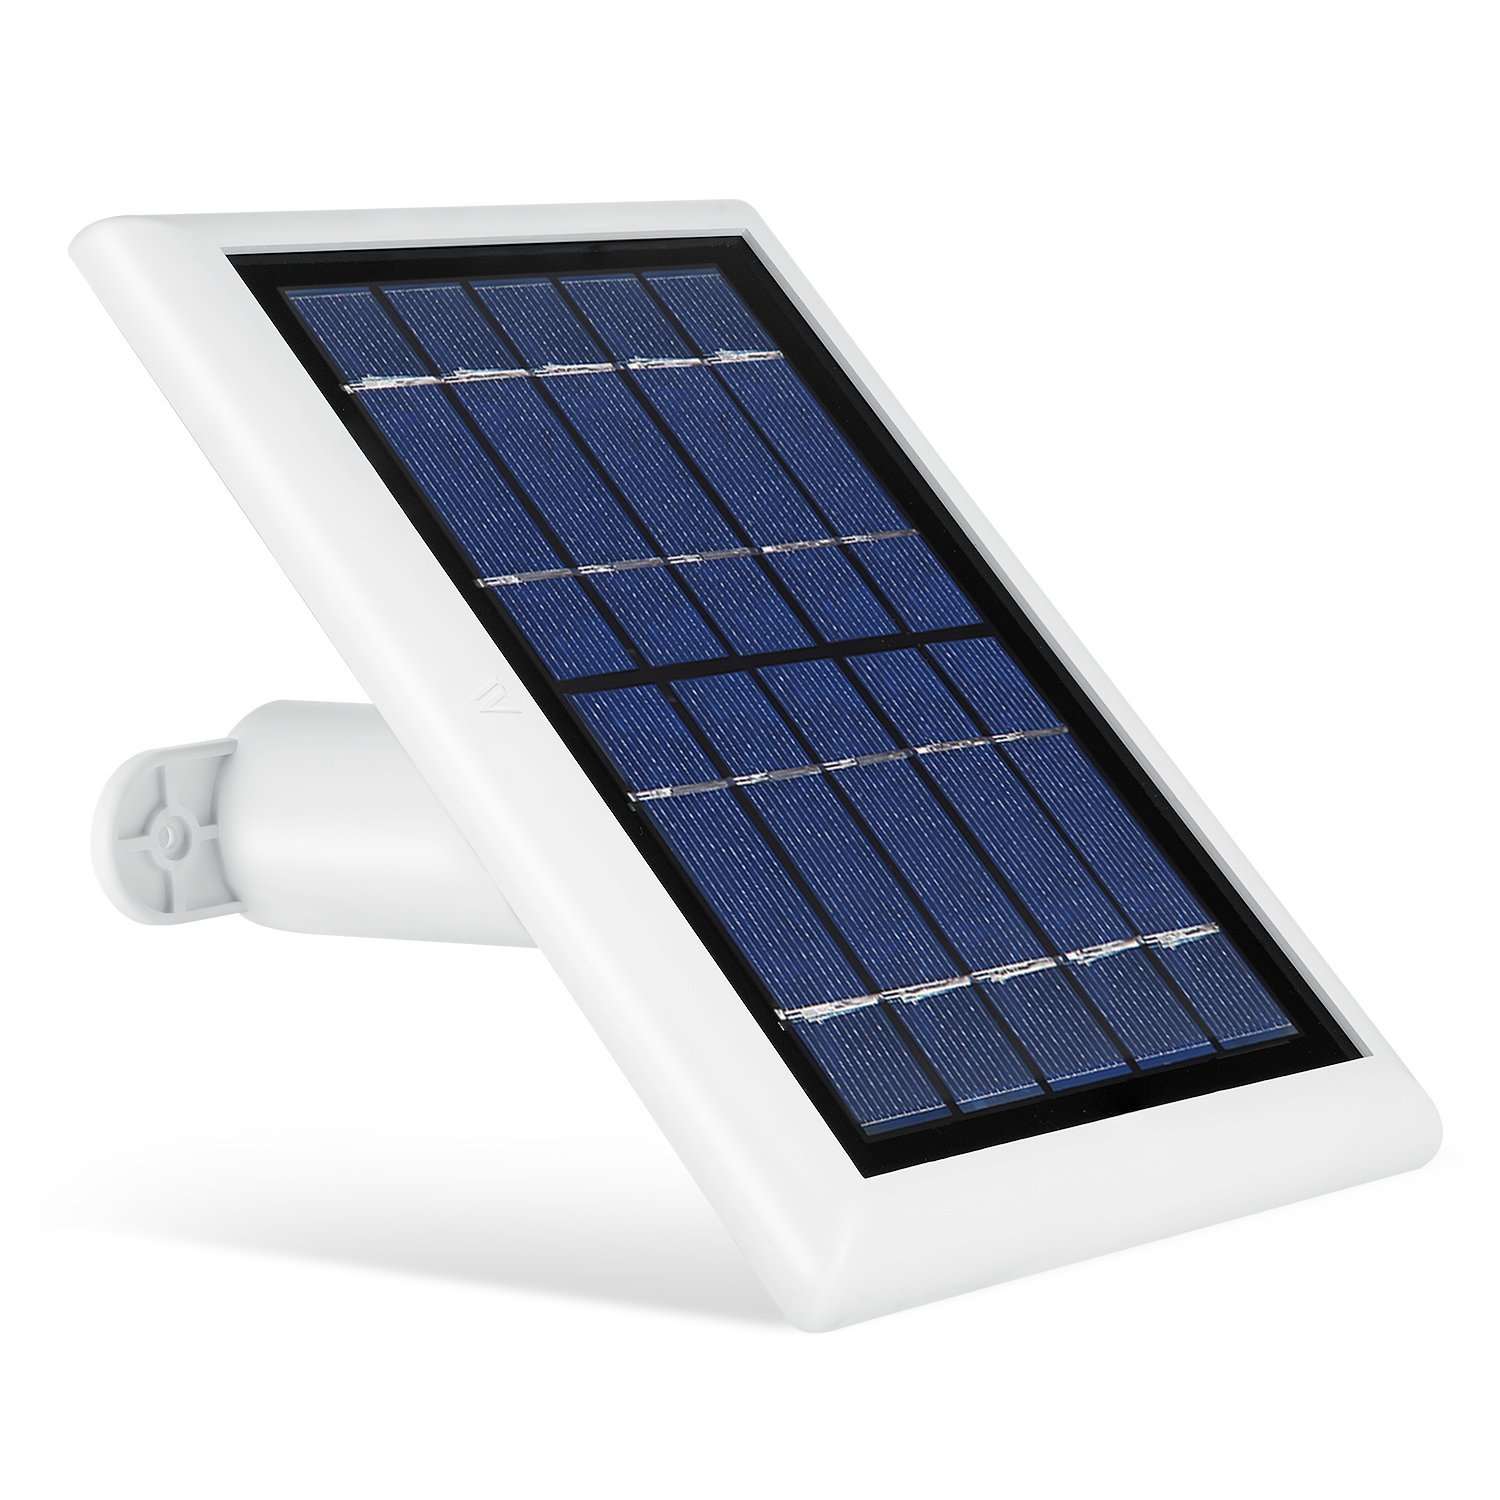 Solar Panel for Logitech Circle 2, Power Your Home Security Camera Continuously with Our Solar Charger - by Wasserstein (White) by Wasserstein